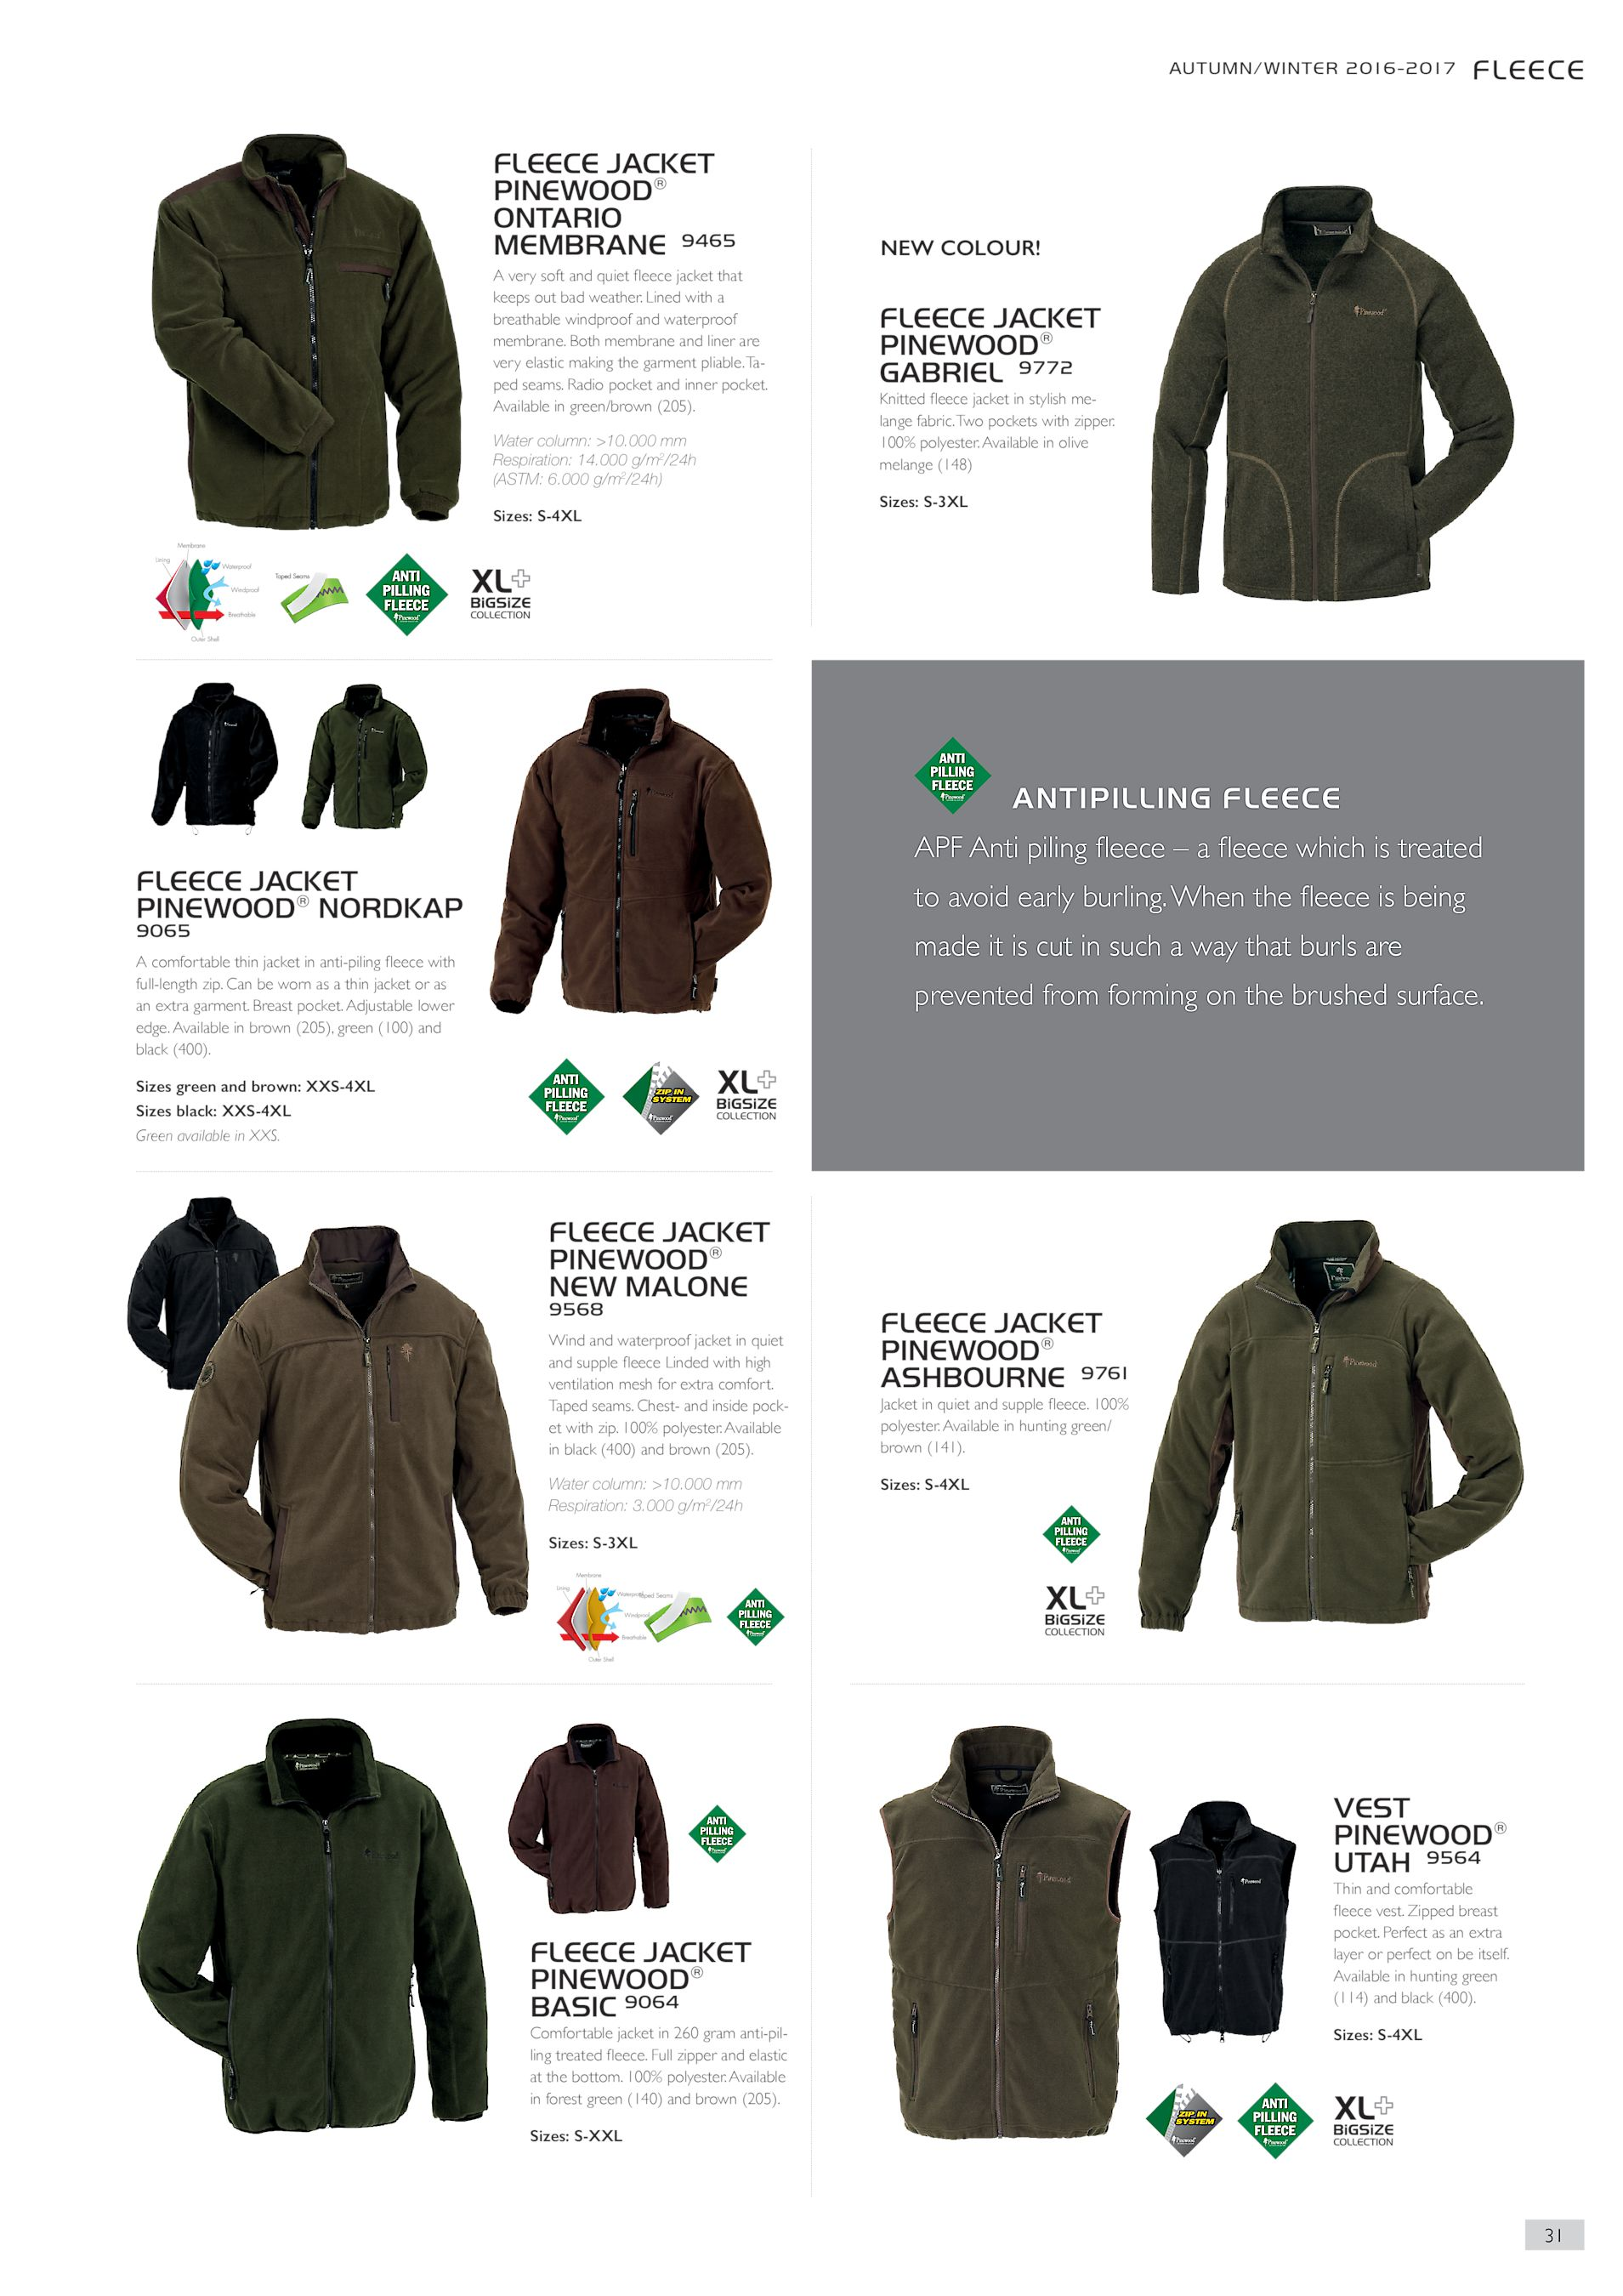 AUTUMN WINTER 2016-2017 FLEECE JACKET PINEWOOD® ONTARIO MEMBRANE 9465 A  very soft and quiet fleece jacket that keeps out bad weather. fa751e3db6125